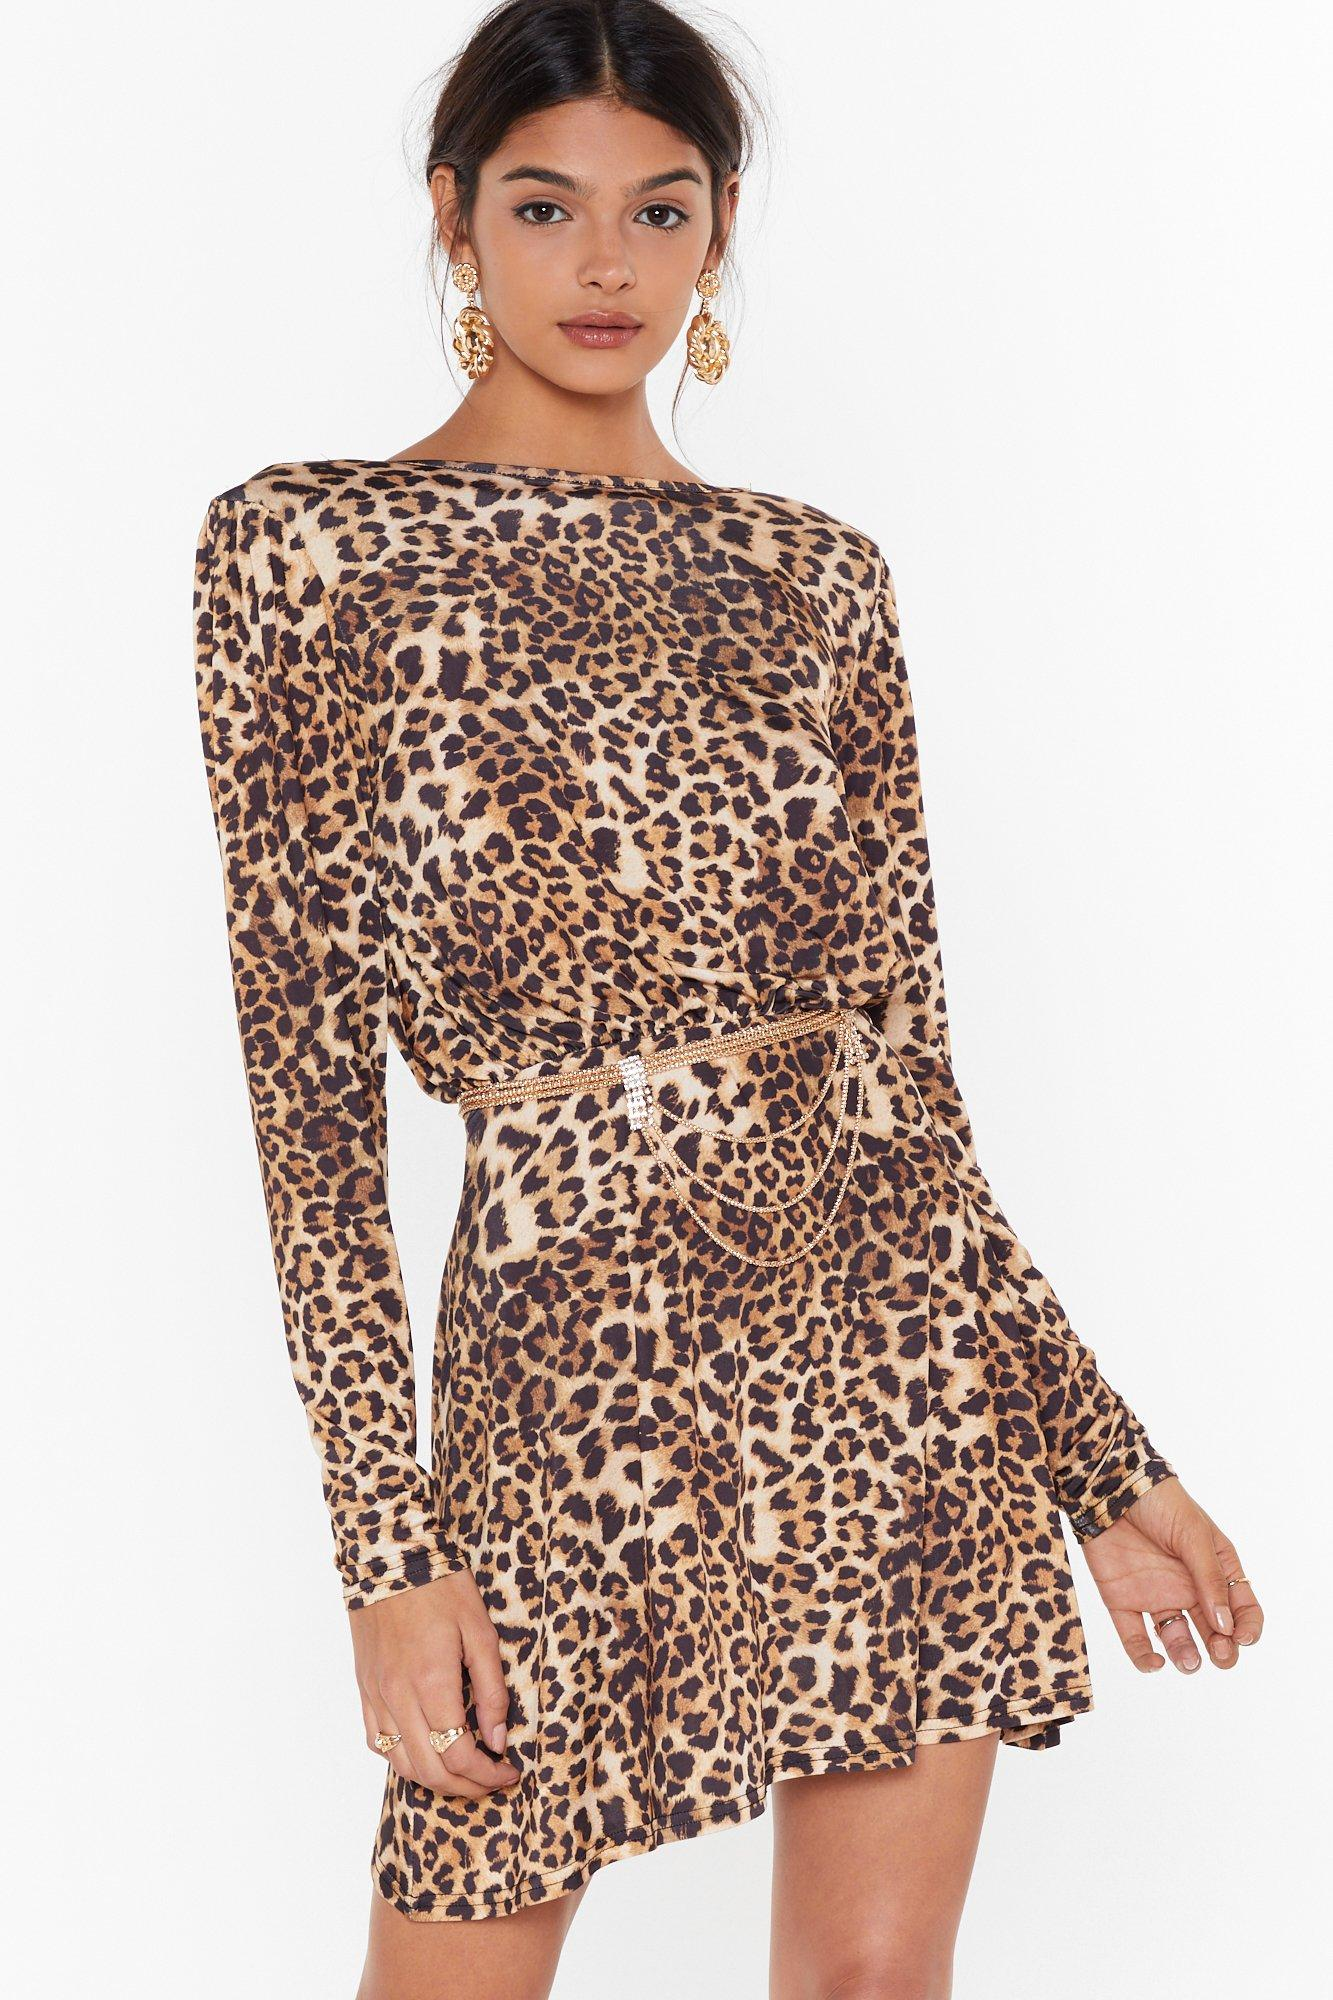 Image of Hey Wild Child Leopard Mini Dress